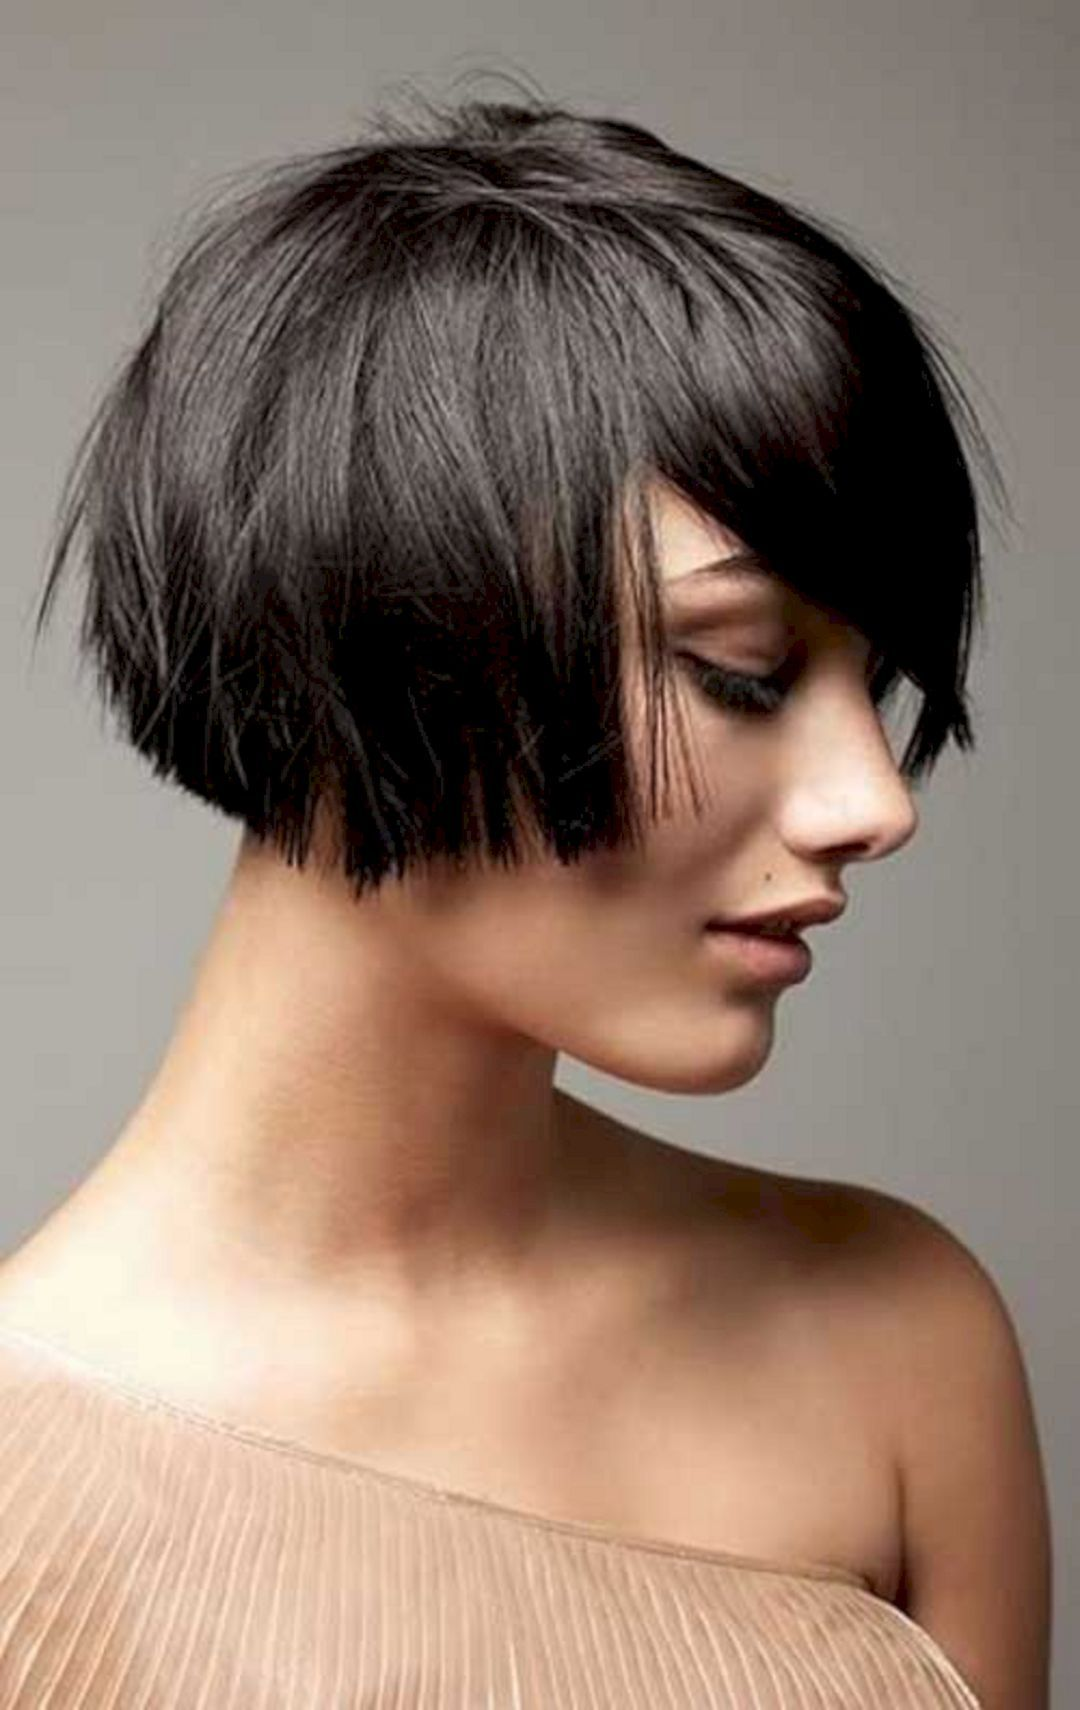 Just Perfect Beautiful 10 French Short Hair Style For Women Looks More Pretty Http Uniqlog Com Beautiful 25 Fre Bob Hairstyles French Hair French Short Hair